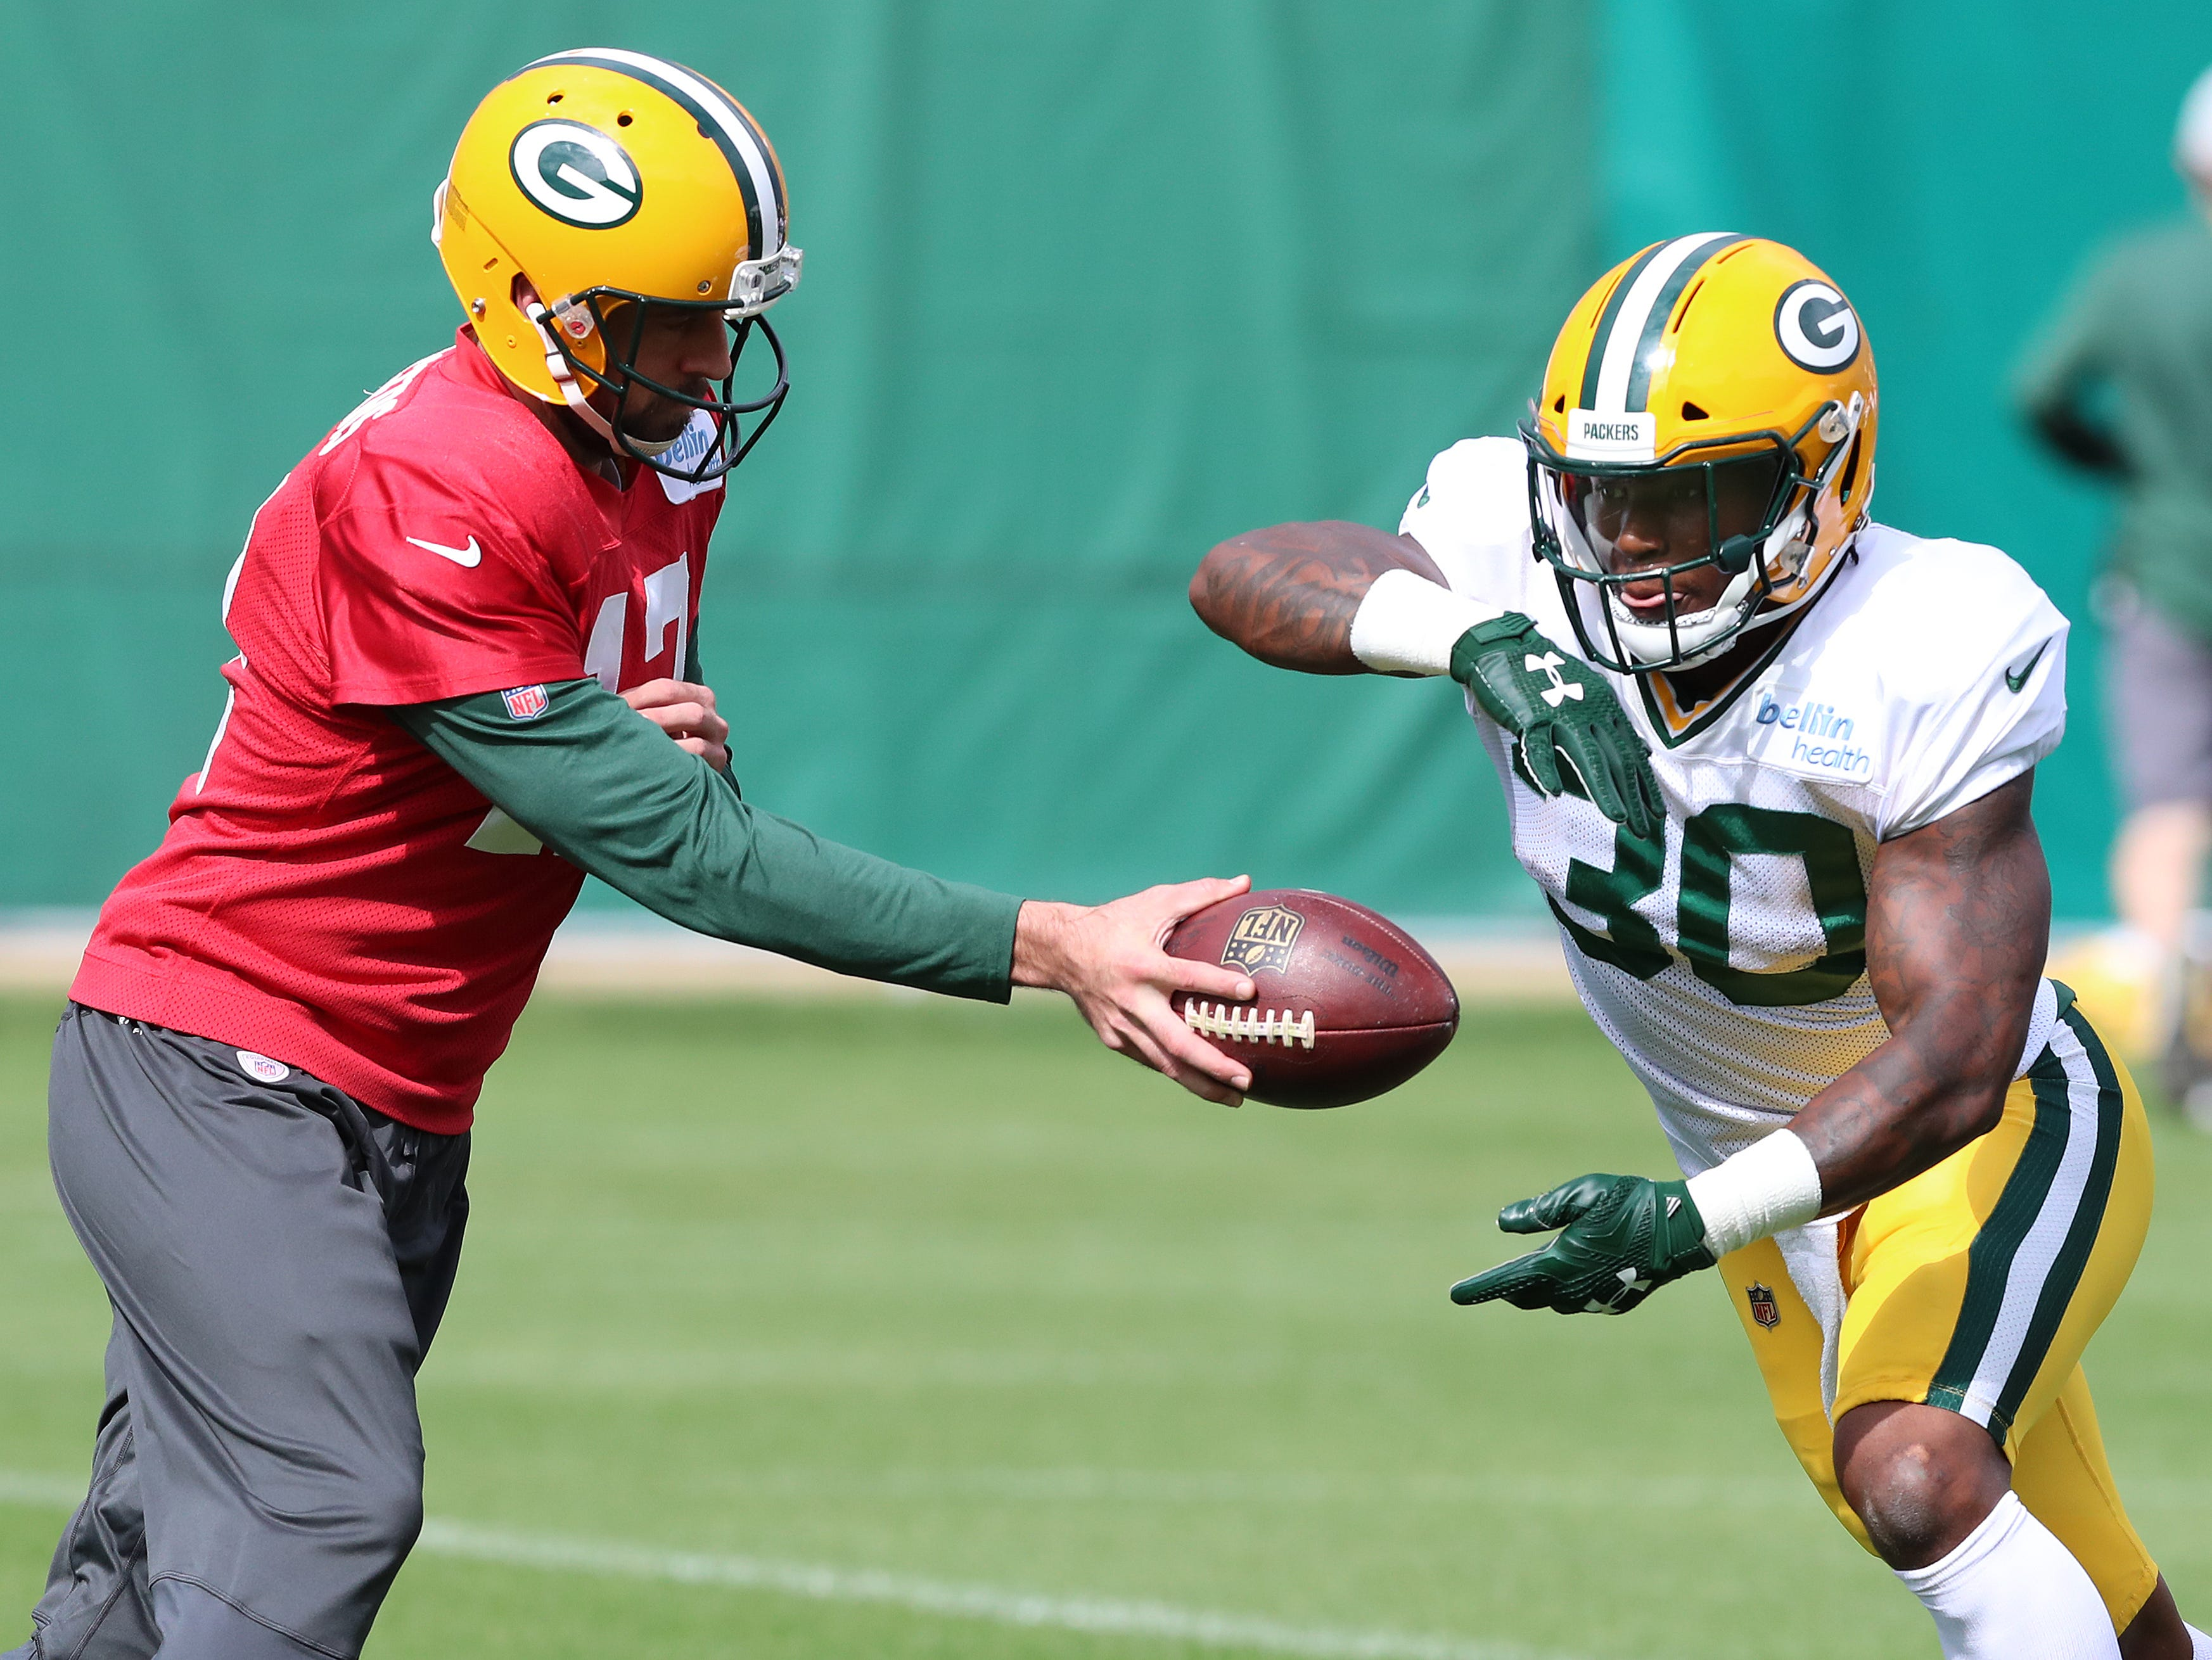 Green Bay Packers quarterback Aaron Rodgers (12) hands off to running back Jamaal Williams (30) during practice on Clarke Hinkle Field Thursday, September 27, 2018 in Ashwaubenon, Wis